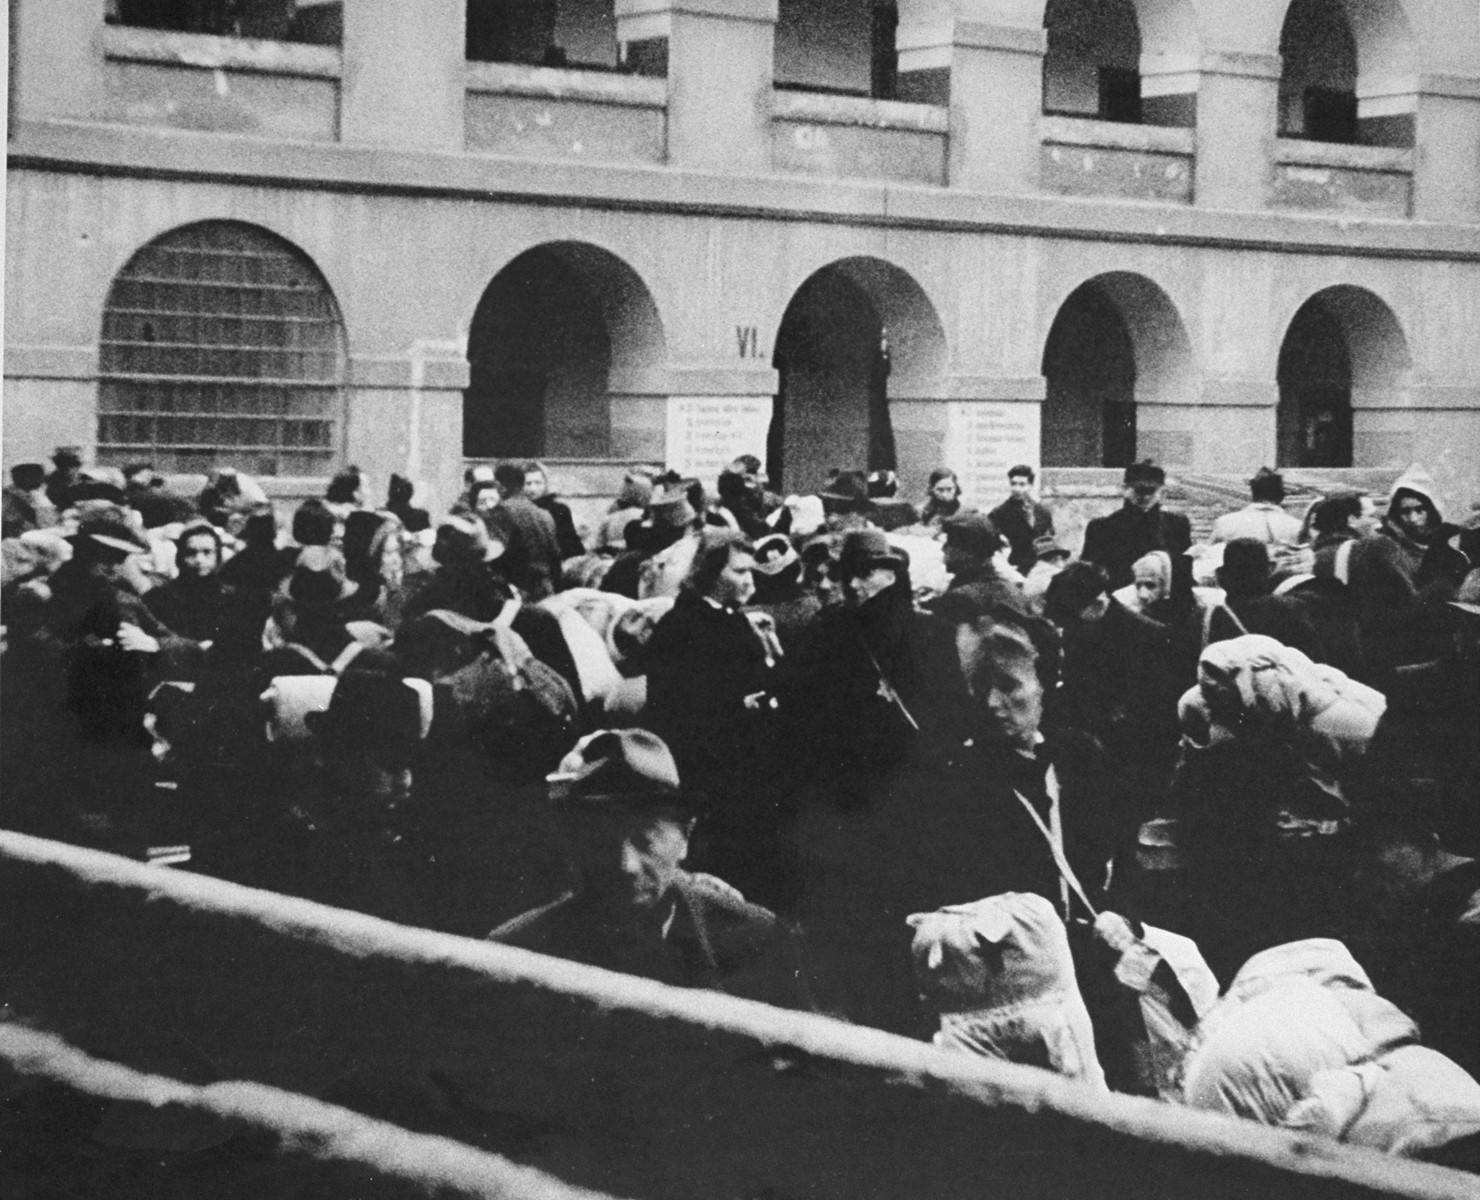 Members of a transport of Dutch Jews that has just arrived in Theresienstadt are gathered in the courtyard of the ghetto. [oversized photo]